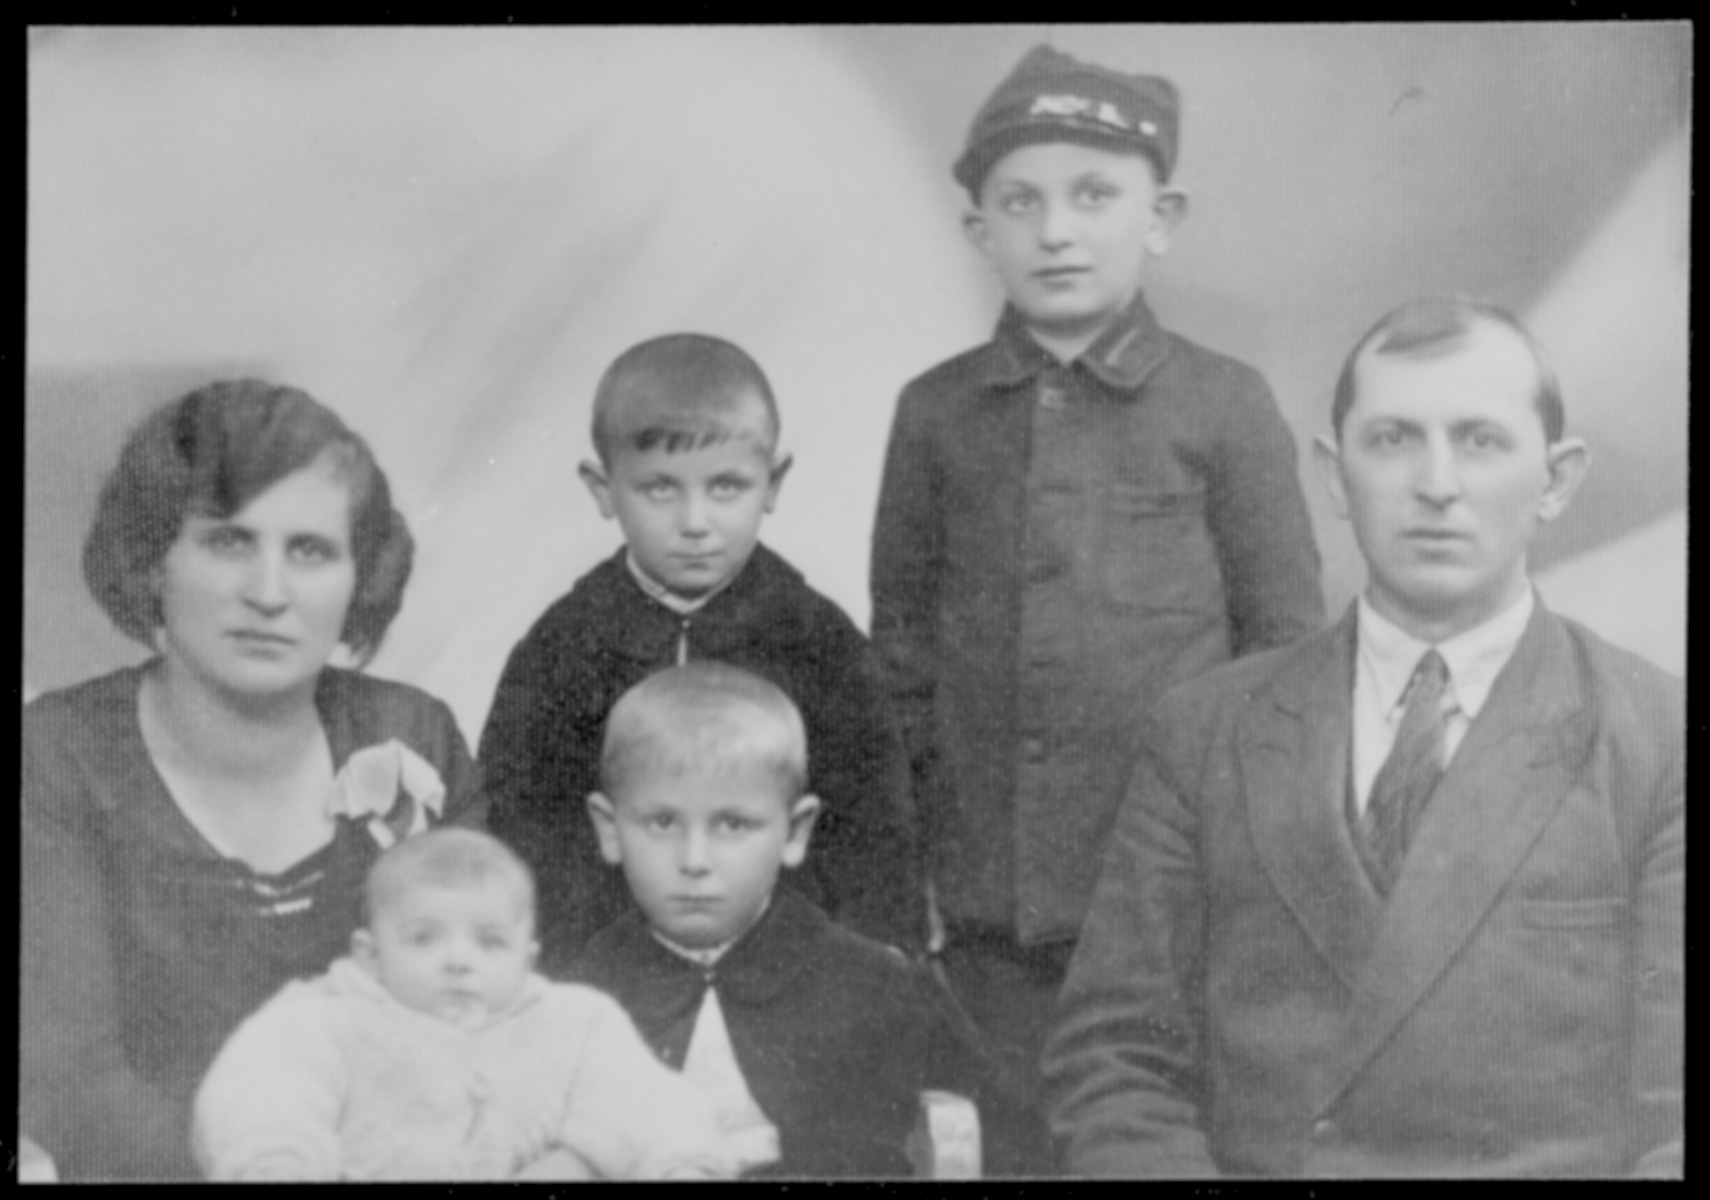 Portrait of Dawid and Marja Cymbler, with their children, Rywka, Icie, Israel Mojsze, and Fajwel.